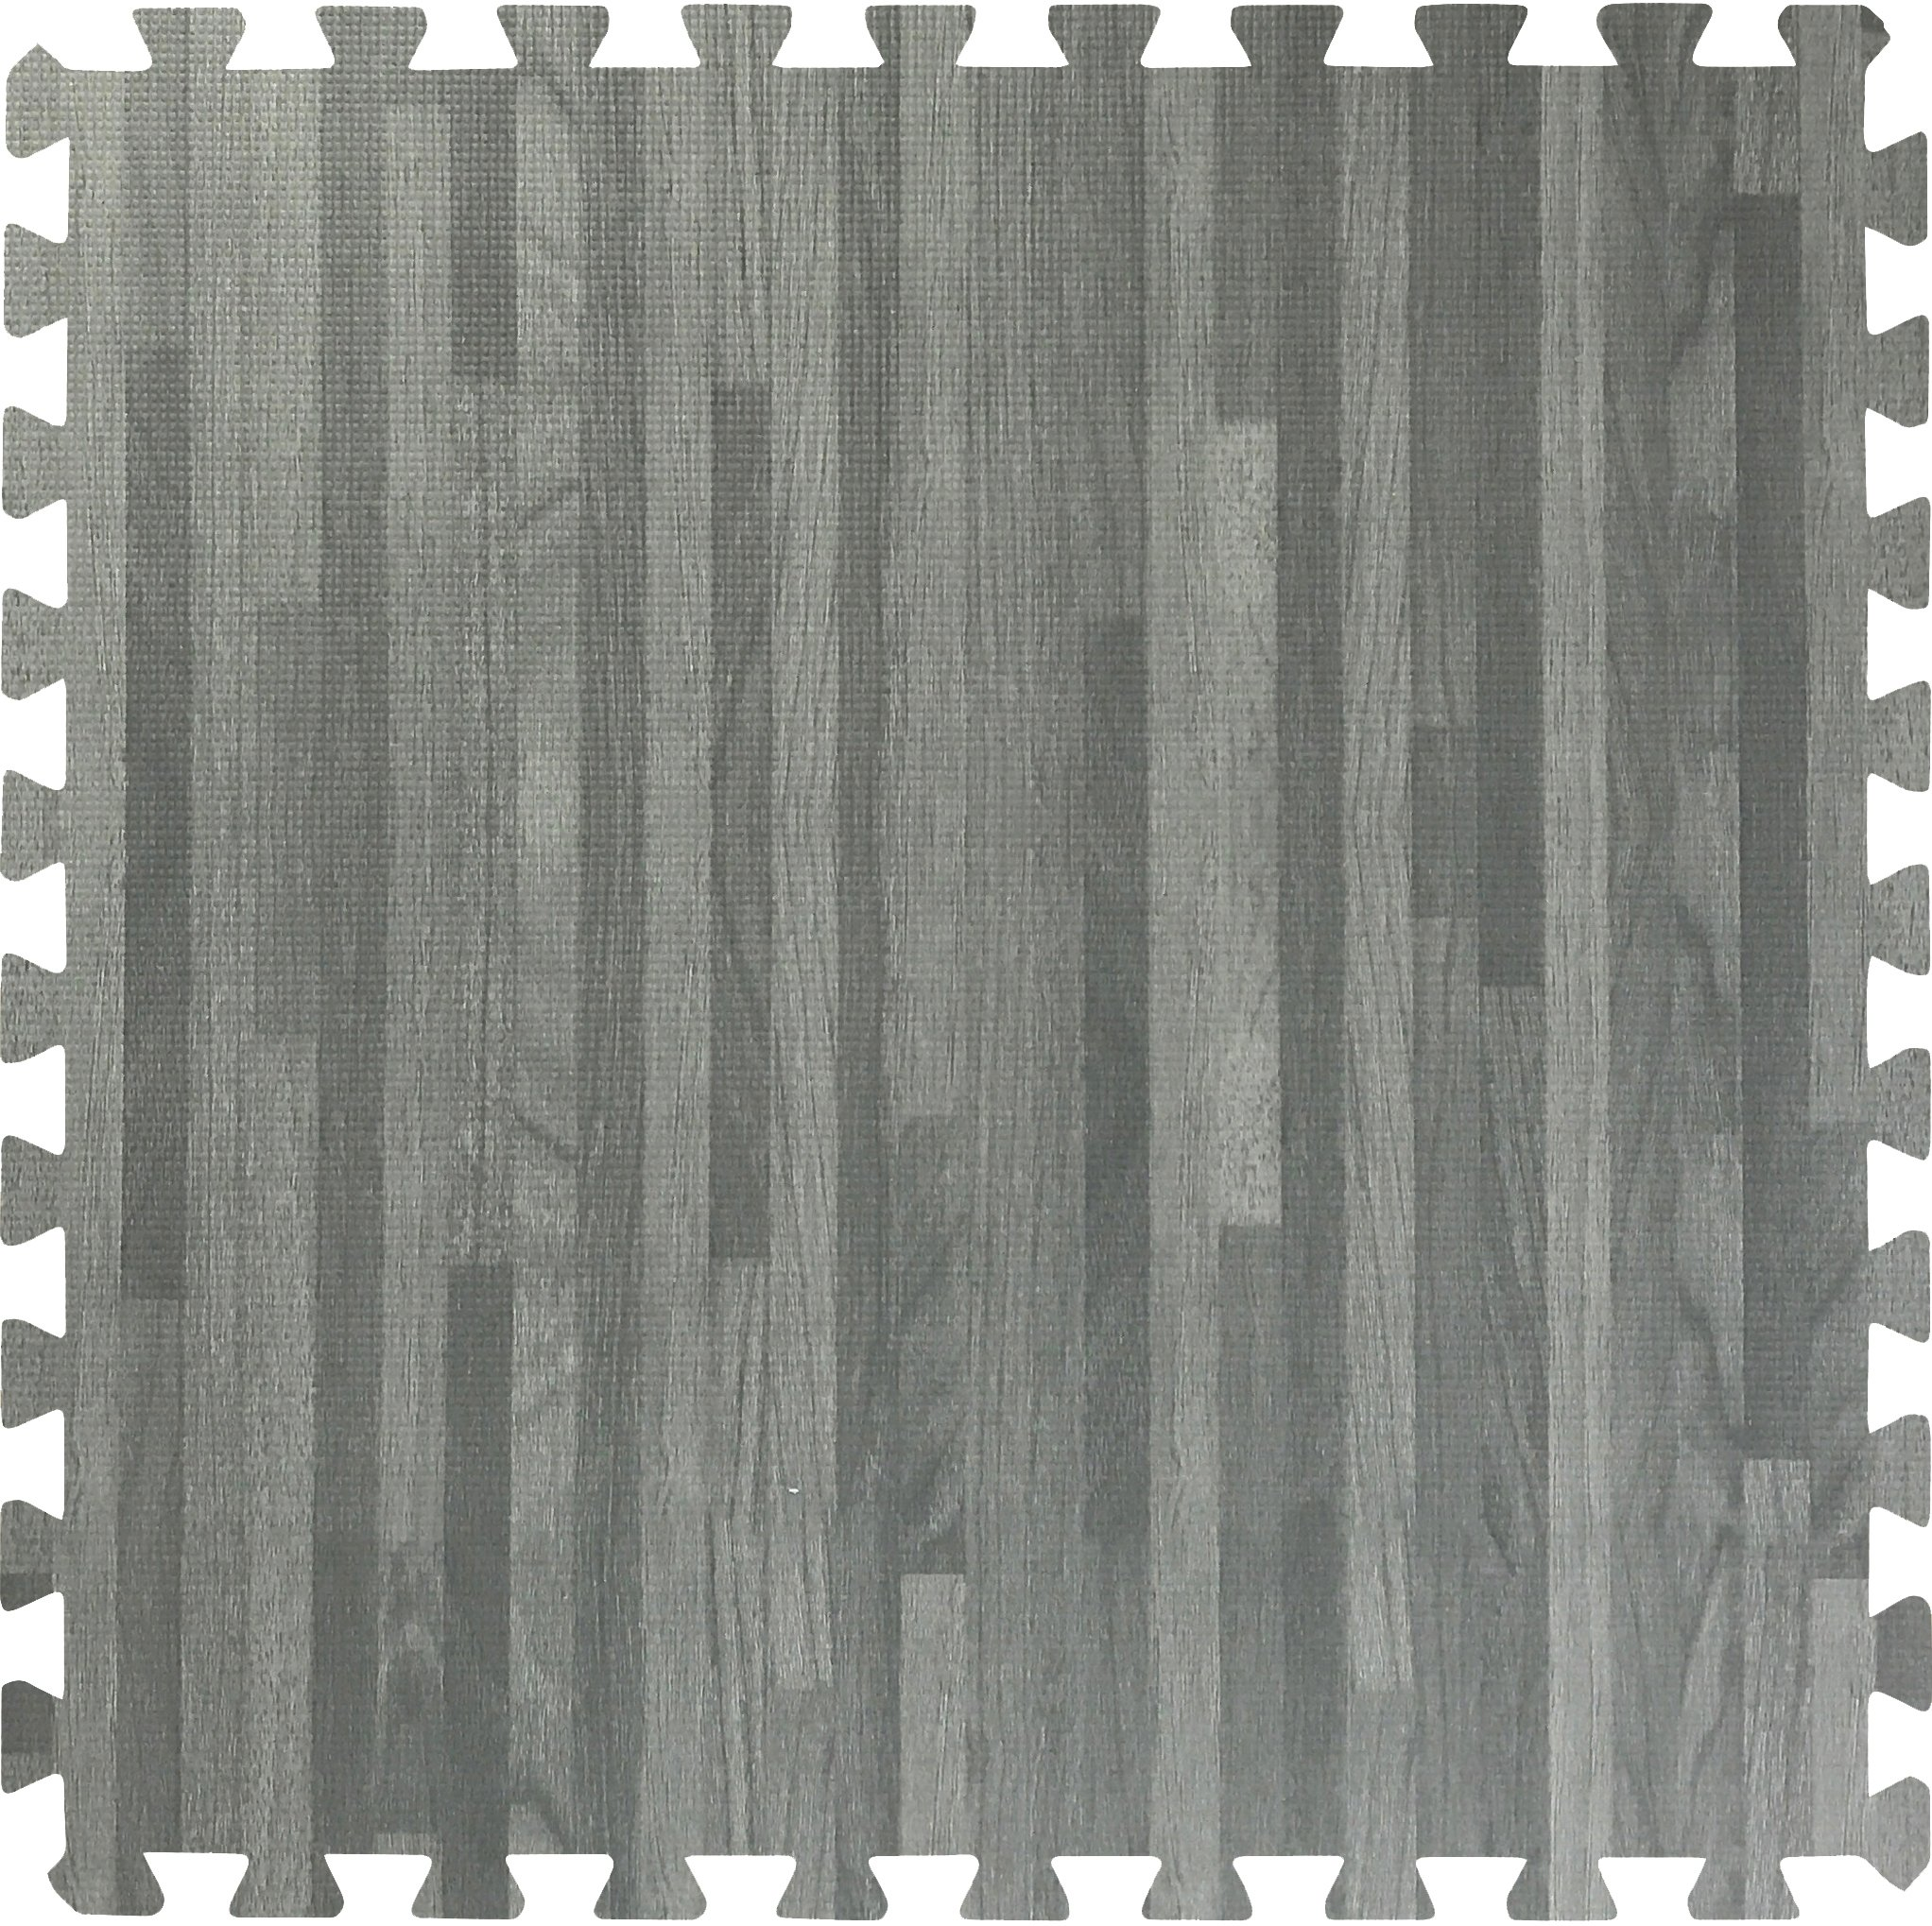 Sorbus Wood Floor Mats Foam Interlocking Wood Mats Each Tile 4 Square Feet 3/8-Inch Thick Puzzle Wood Tiles with Borders – for Home Office Playroom Basement (12 Tiles 48 Sq ft, Wood Grain - Gray) by Sorbus (Image #2)